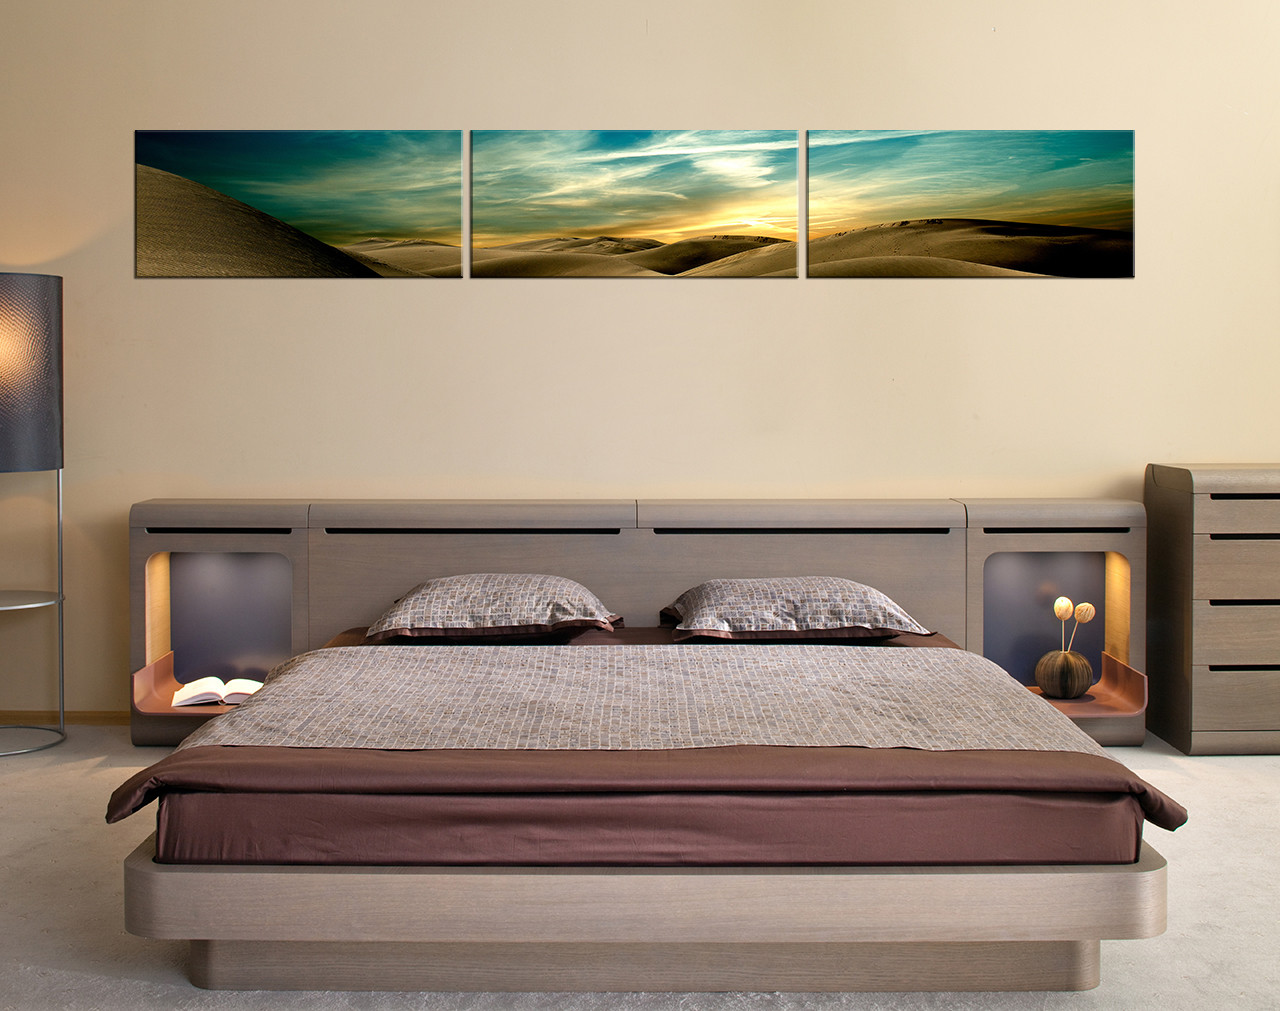 Charming 3 Piece Multi Panel Canvas, Bedroom Huge Canvas Print, Landscape Wall Art,  Green